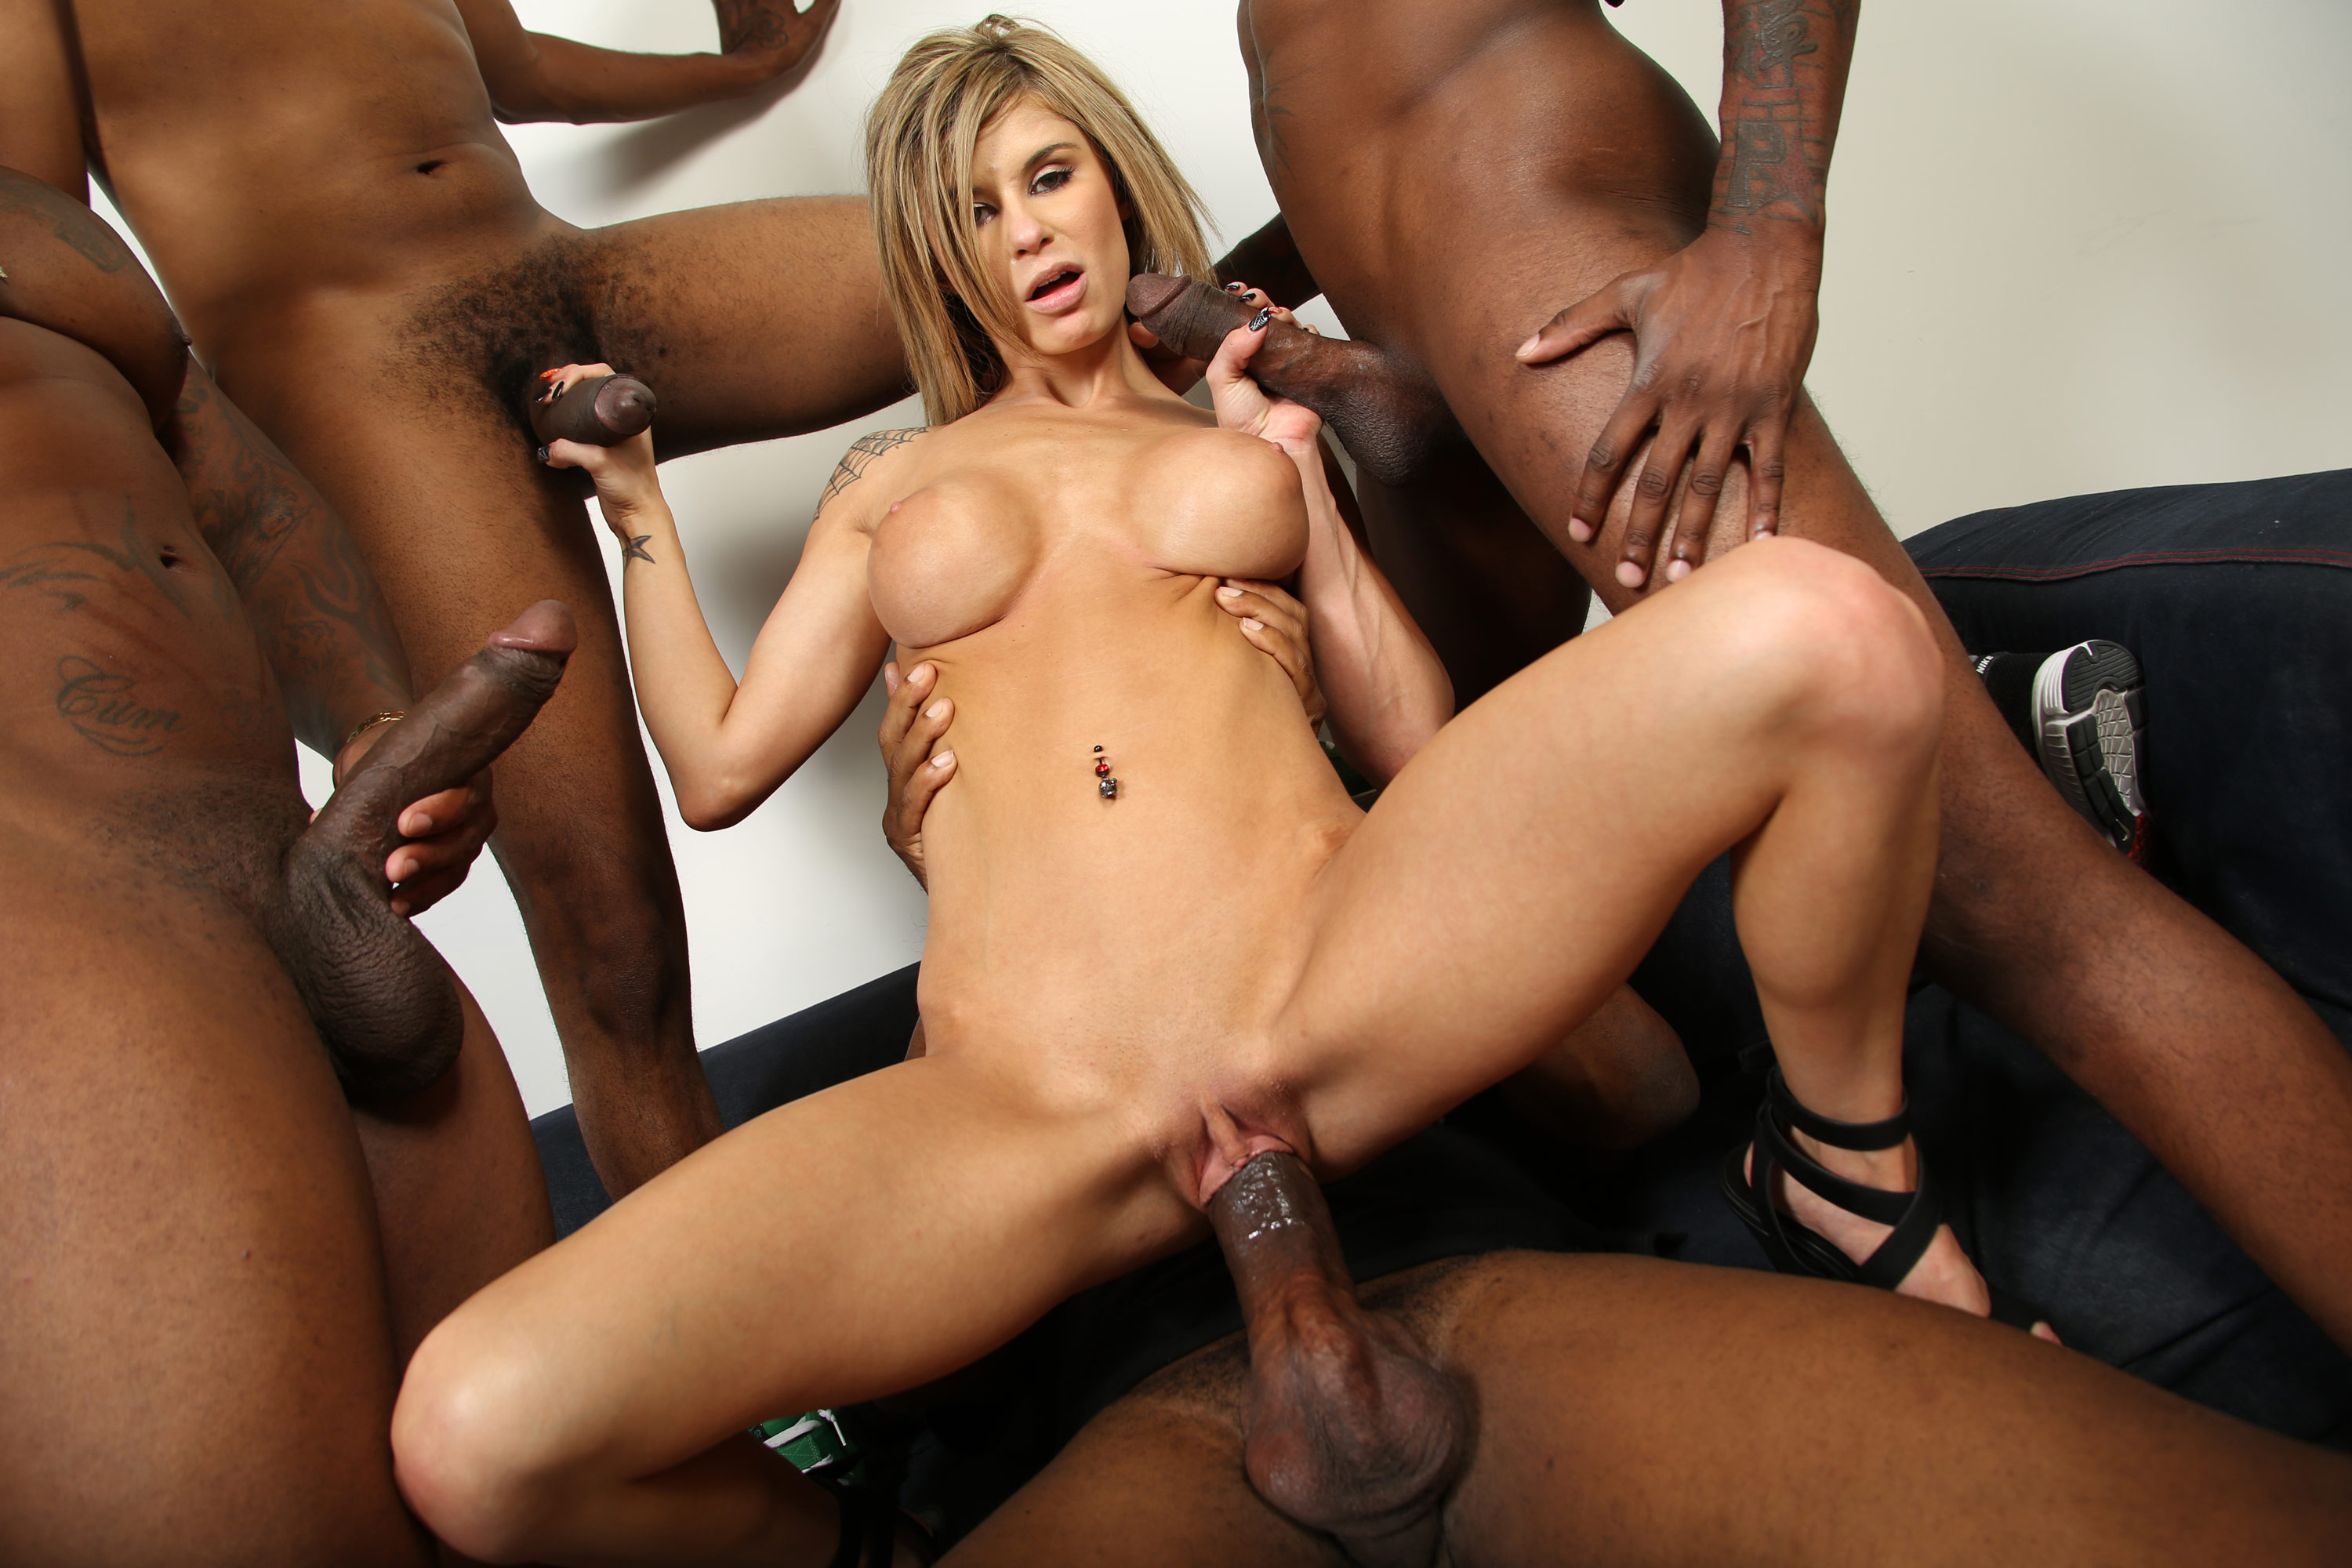 Alyssa lynn takes bbc in front of not her son - 3 part 6